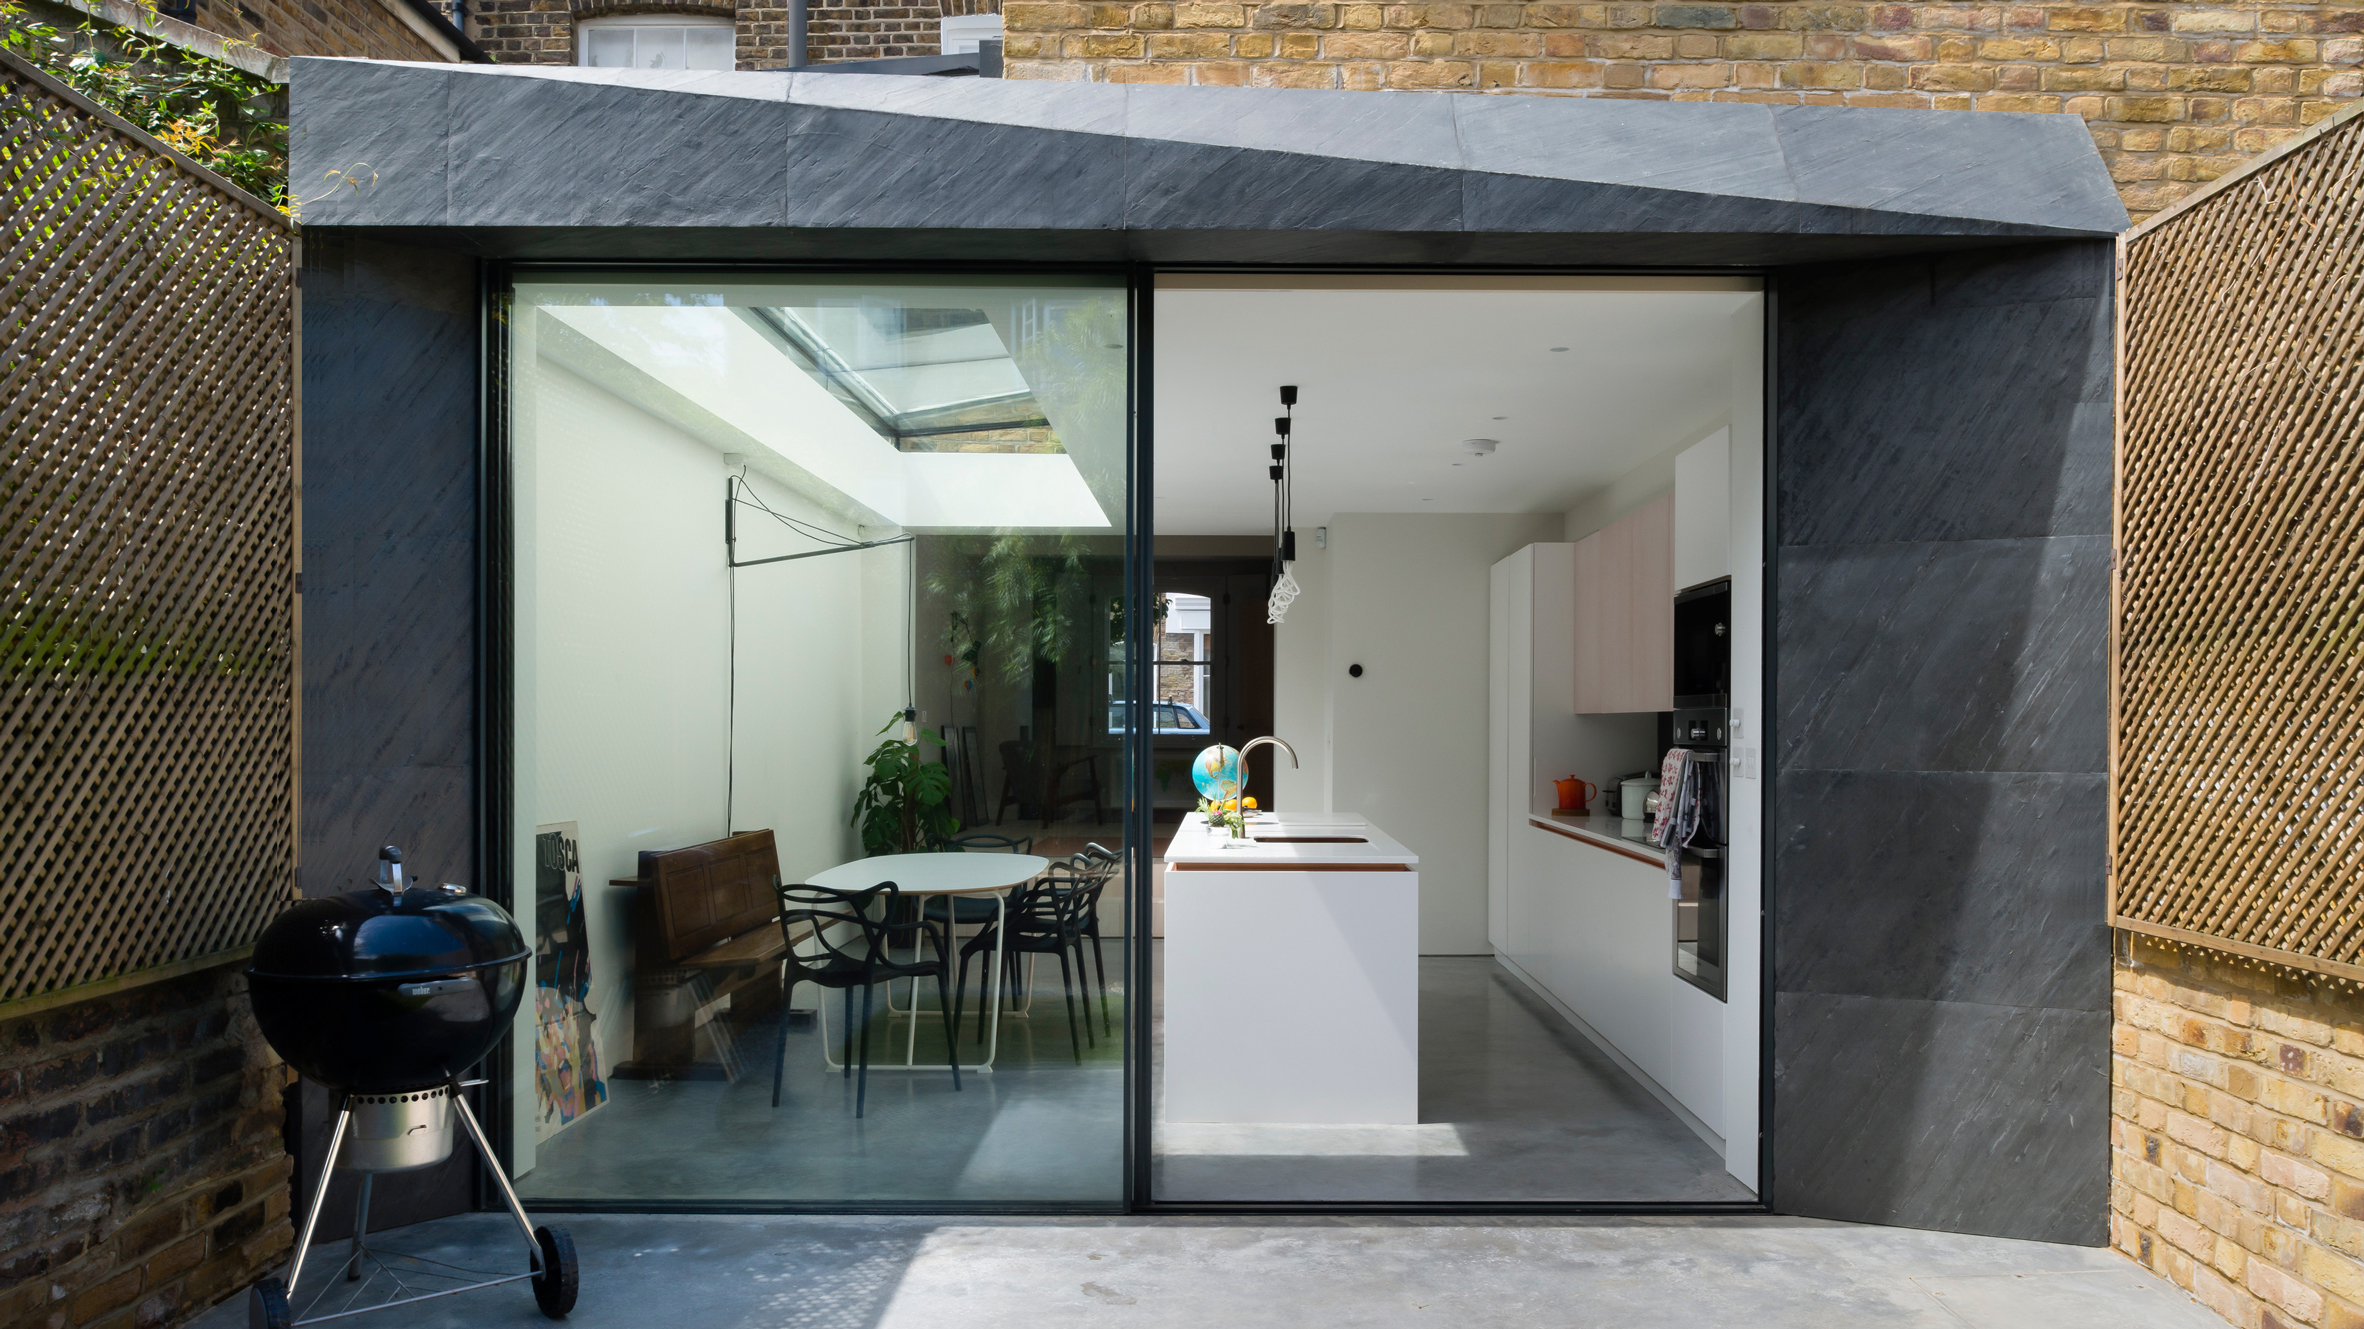 architecture for london builds one house extension in slate and another in brick - Slate House Design